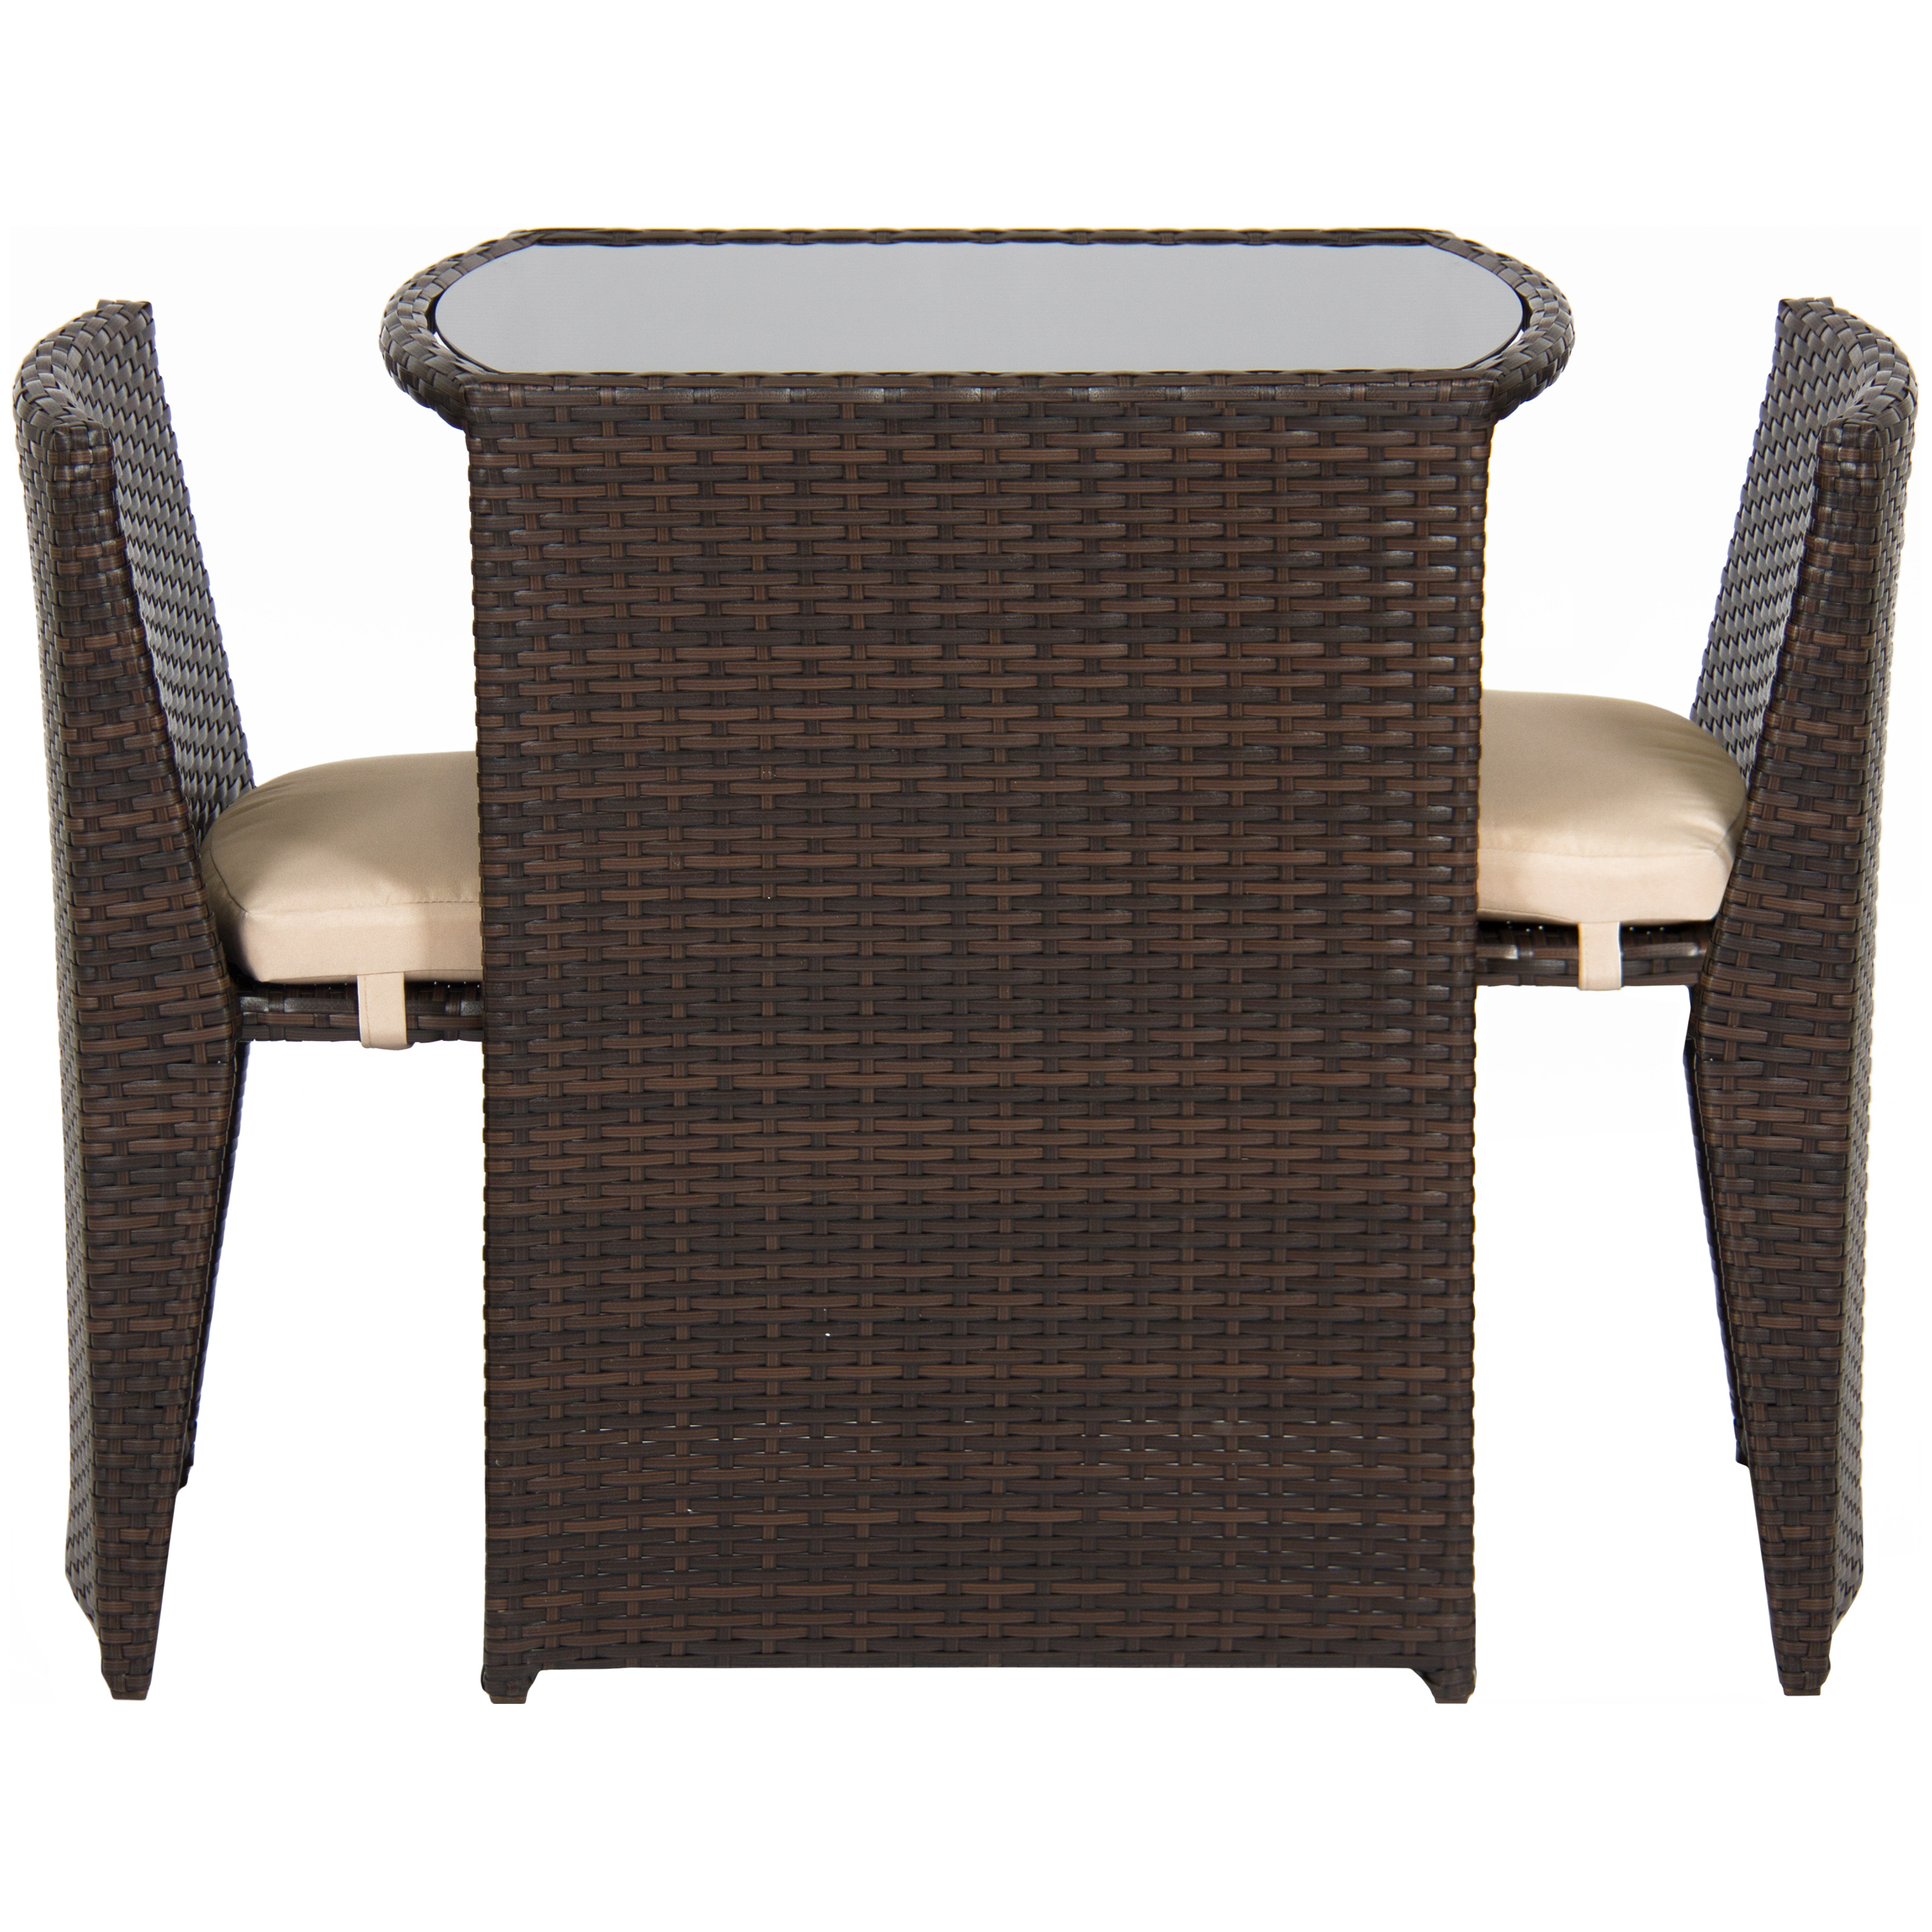 Best Choice Products Outdoor Patio Furniture Wicker 3pc Bistro Set W/ Glass  Top Table,